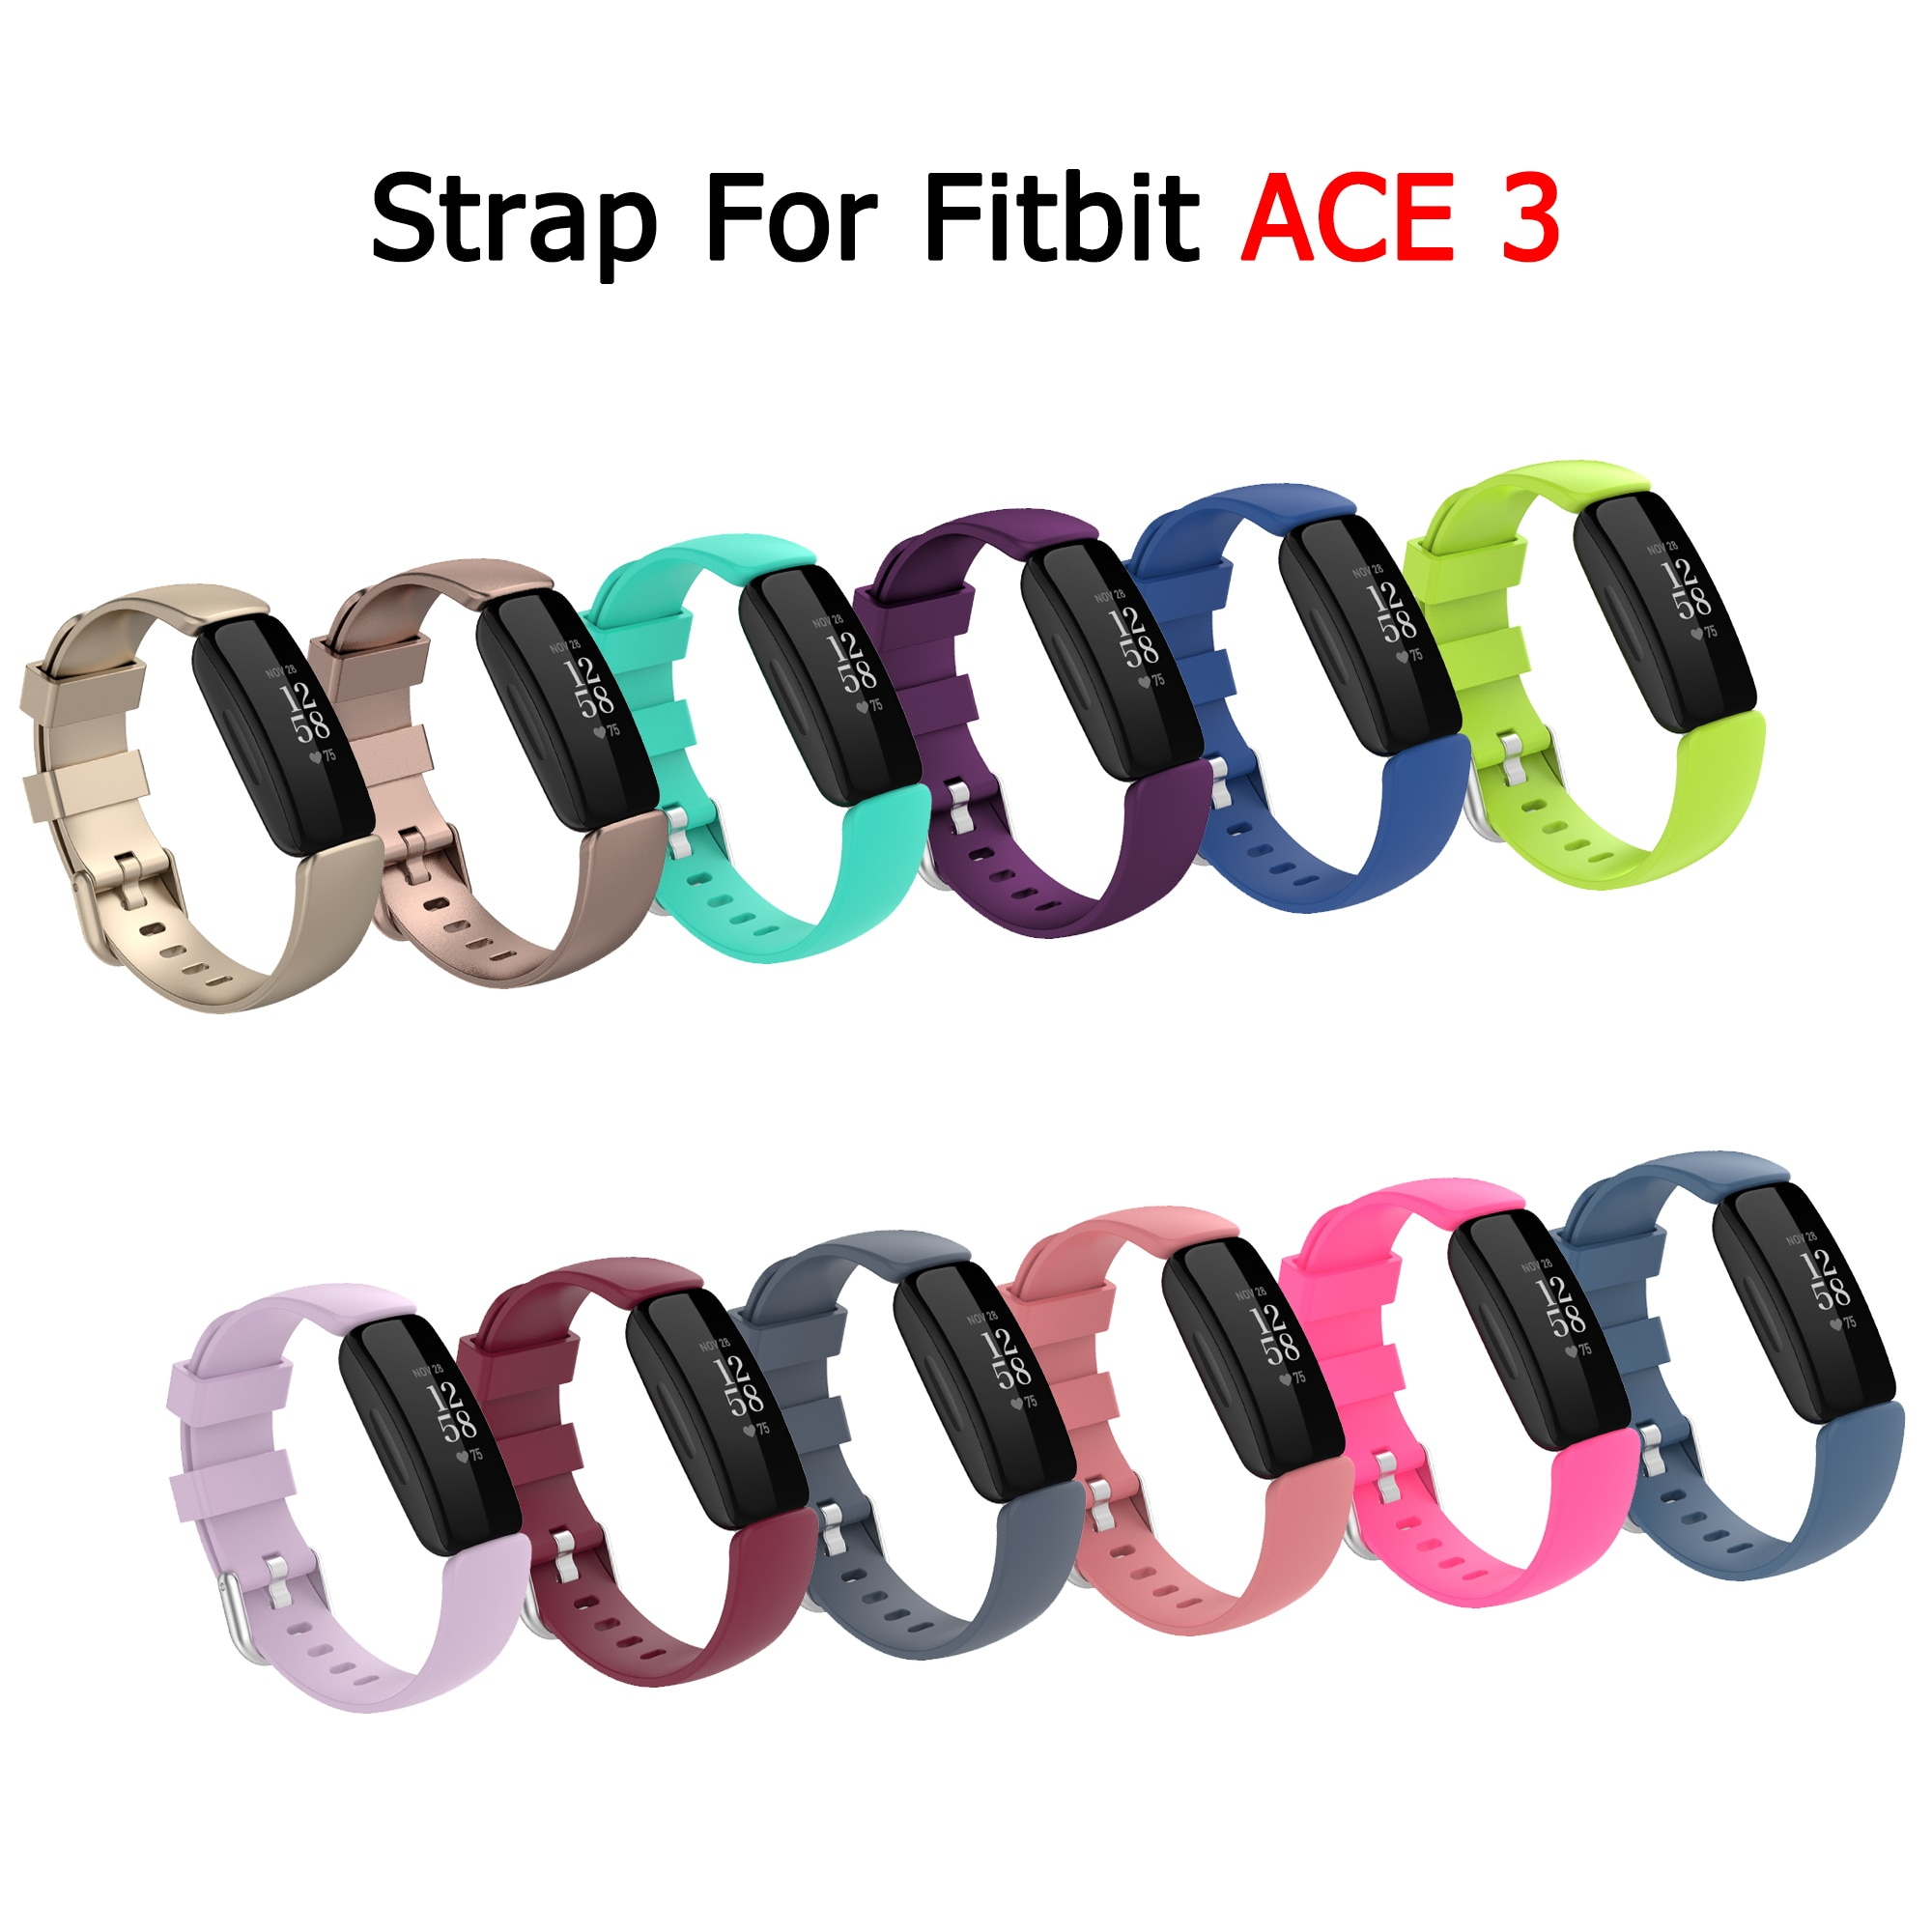 Band For Fitbit ACE 3 Kids Strap Bracelet For ACE3 Children Silicone Belt Replacement Smart Watch Ac